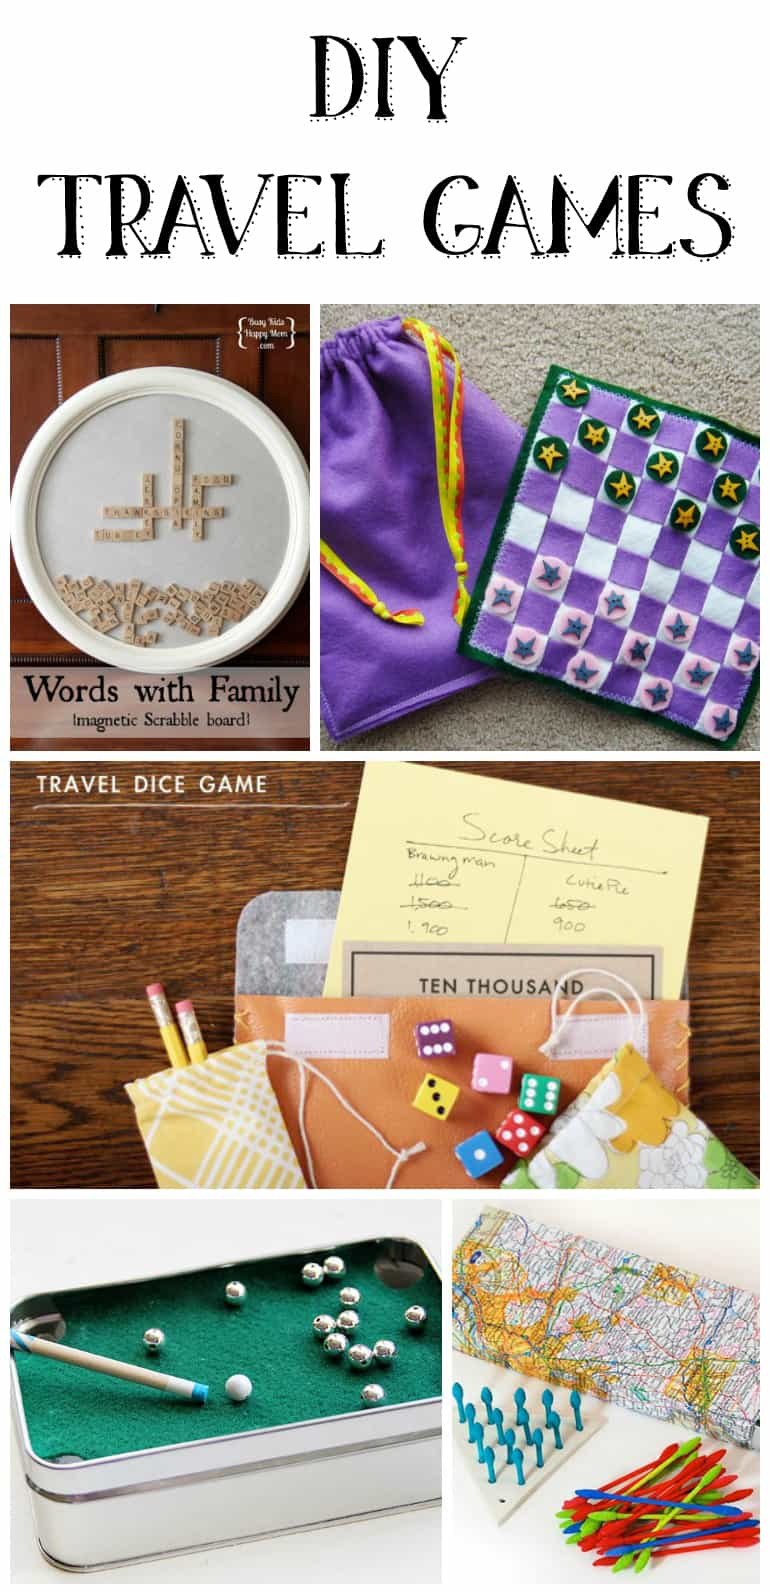 DIY Travel Games - travel games for adults